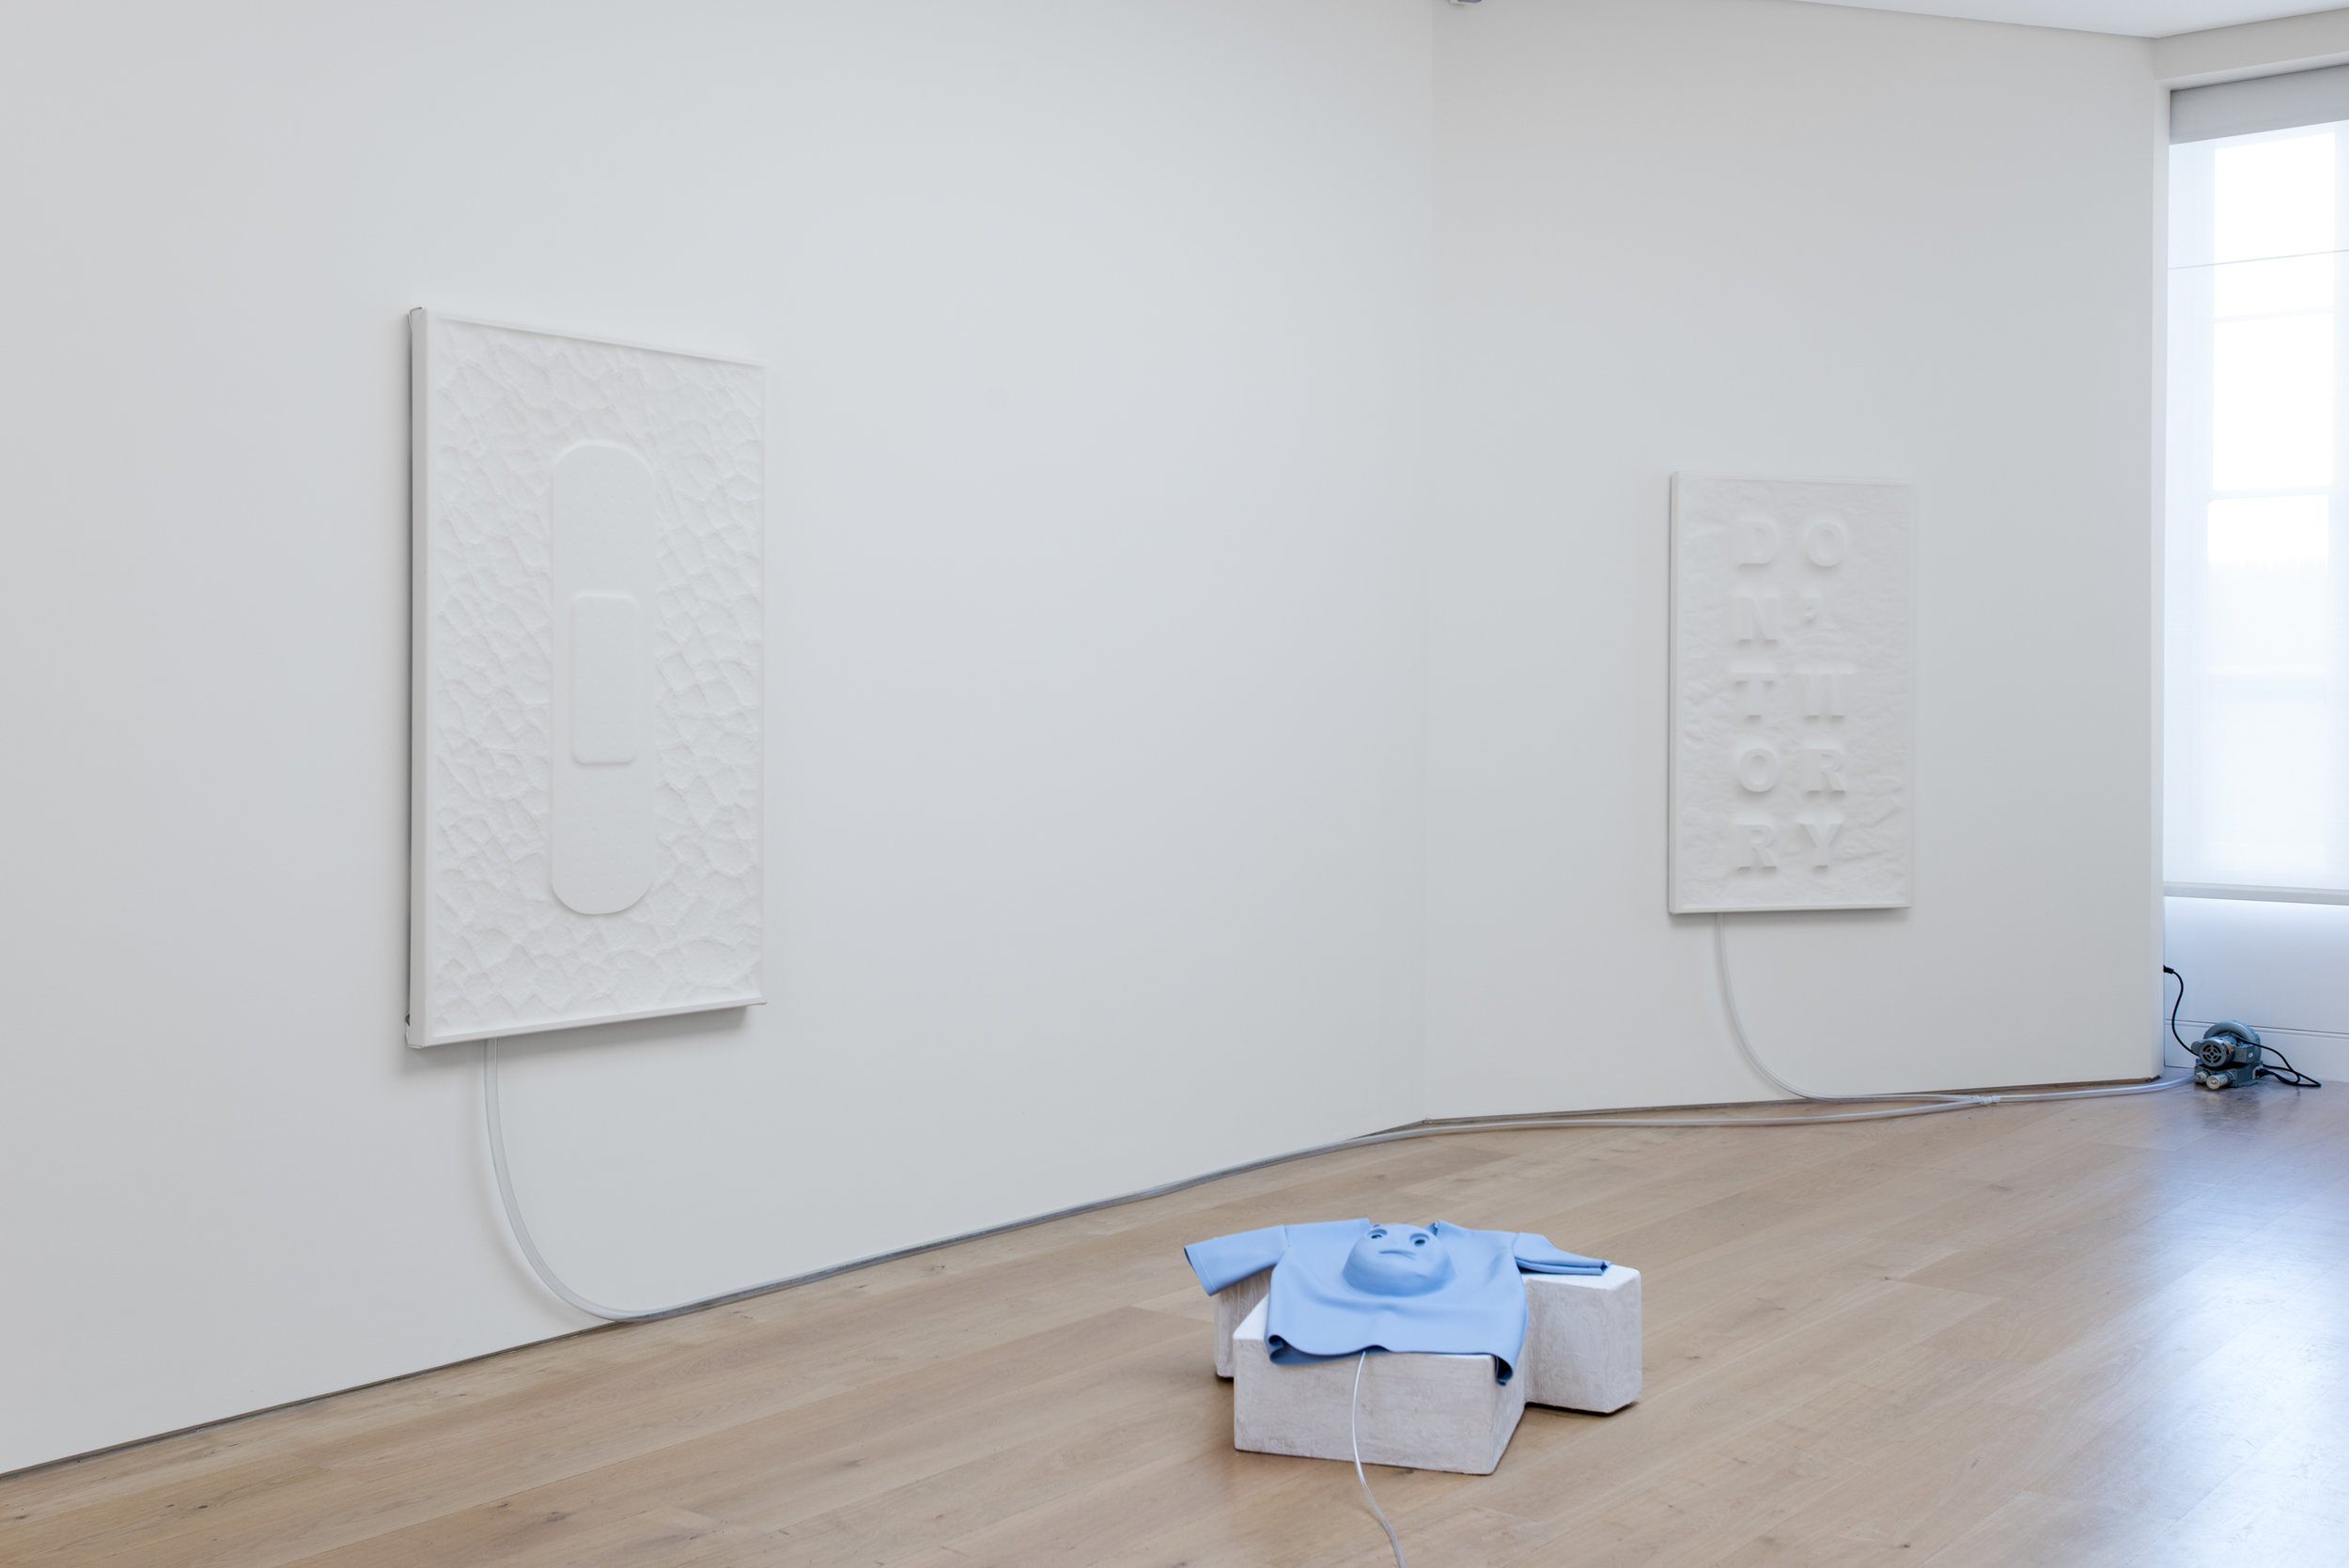 Antoine Catala. Everything is Okay-Season 2. Marlborough Contemporary London_Installation View 8.jpg